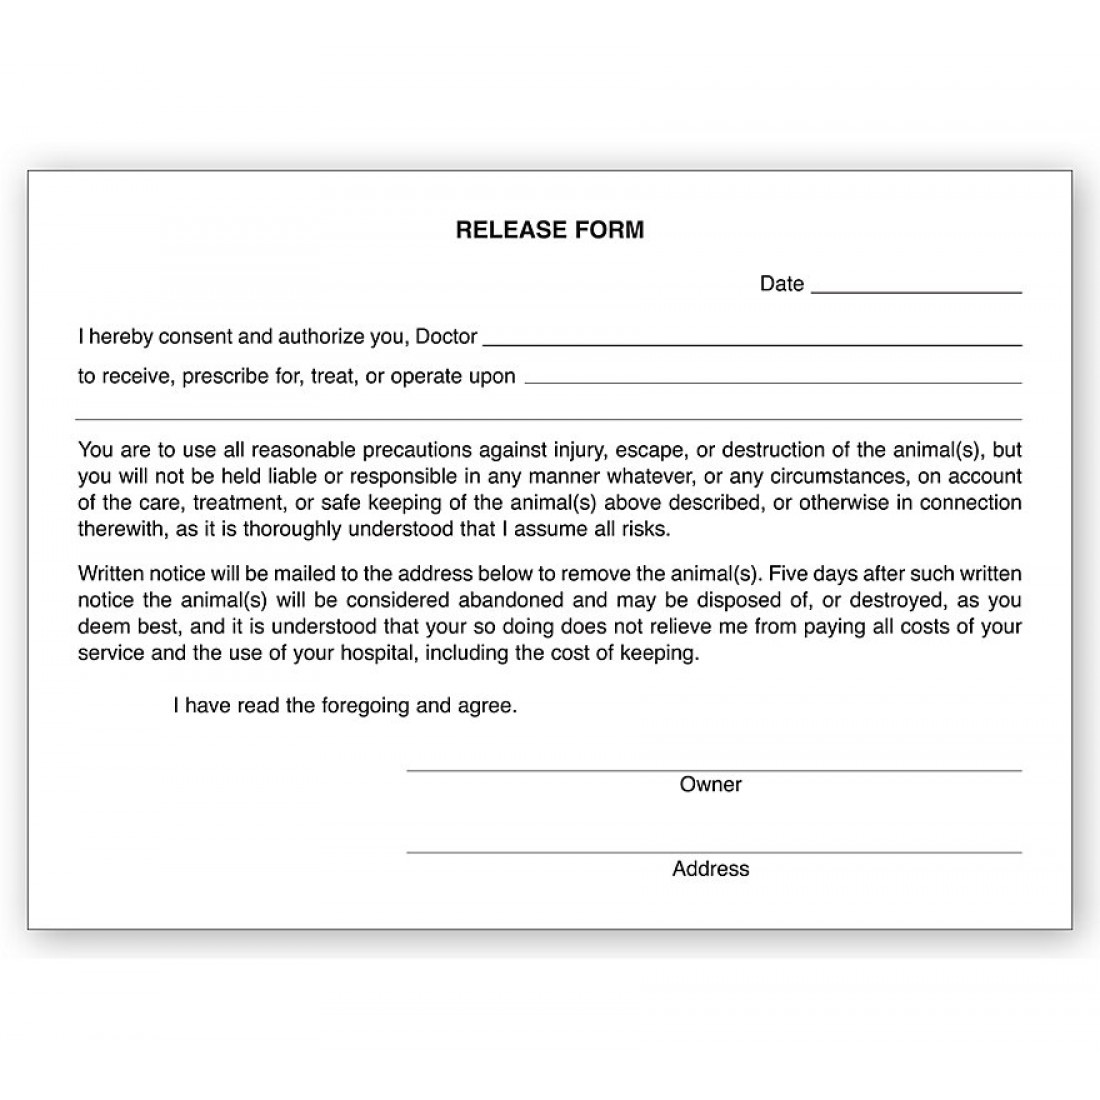 Veterinary Release Form Pads